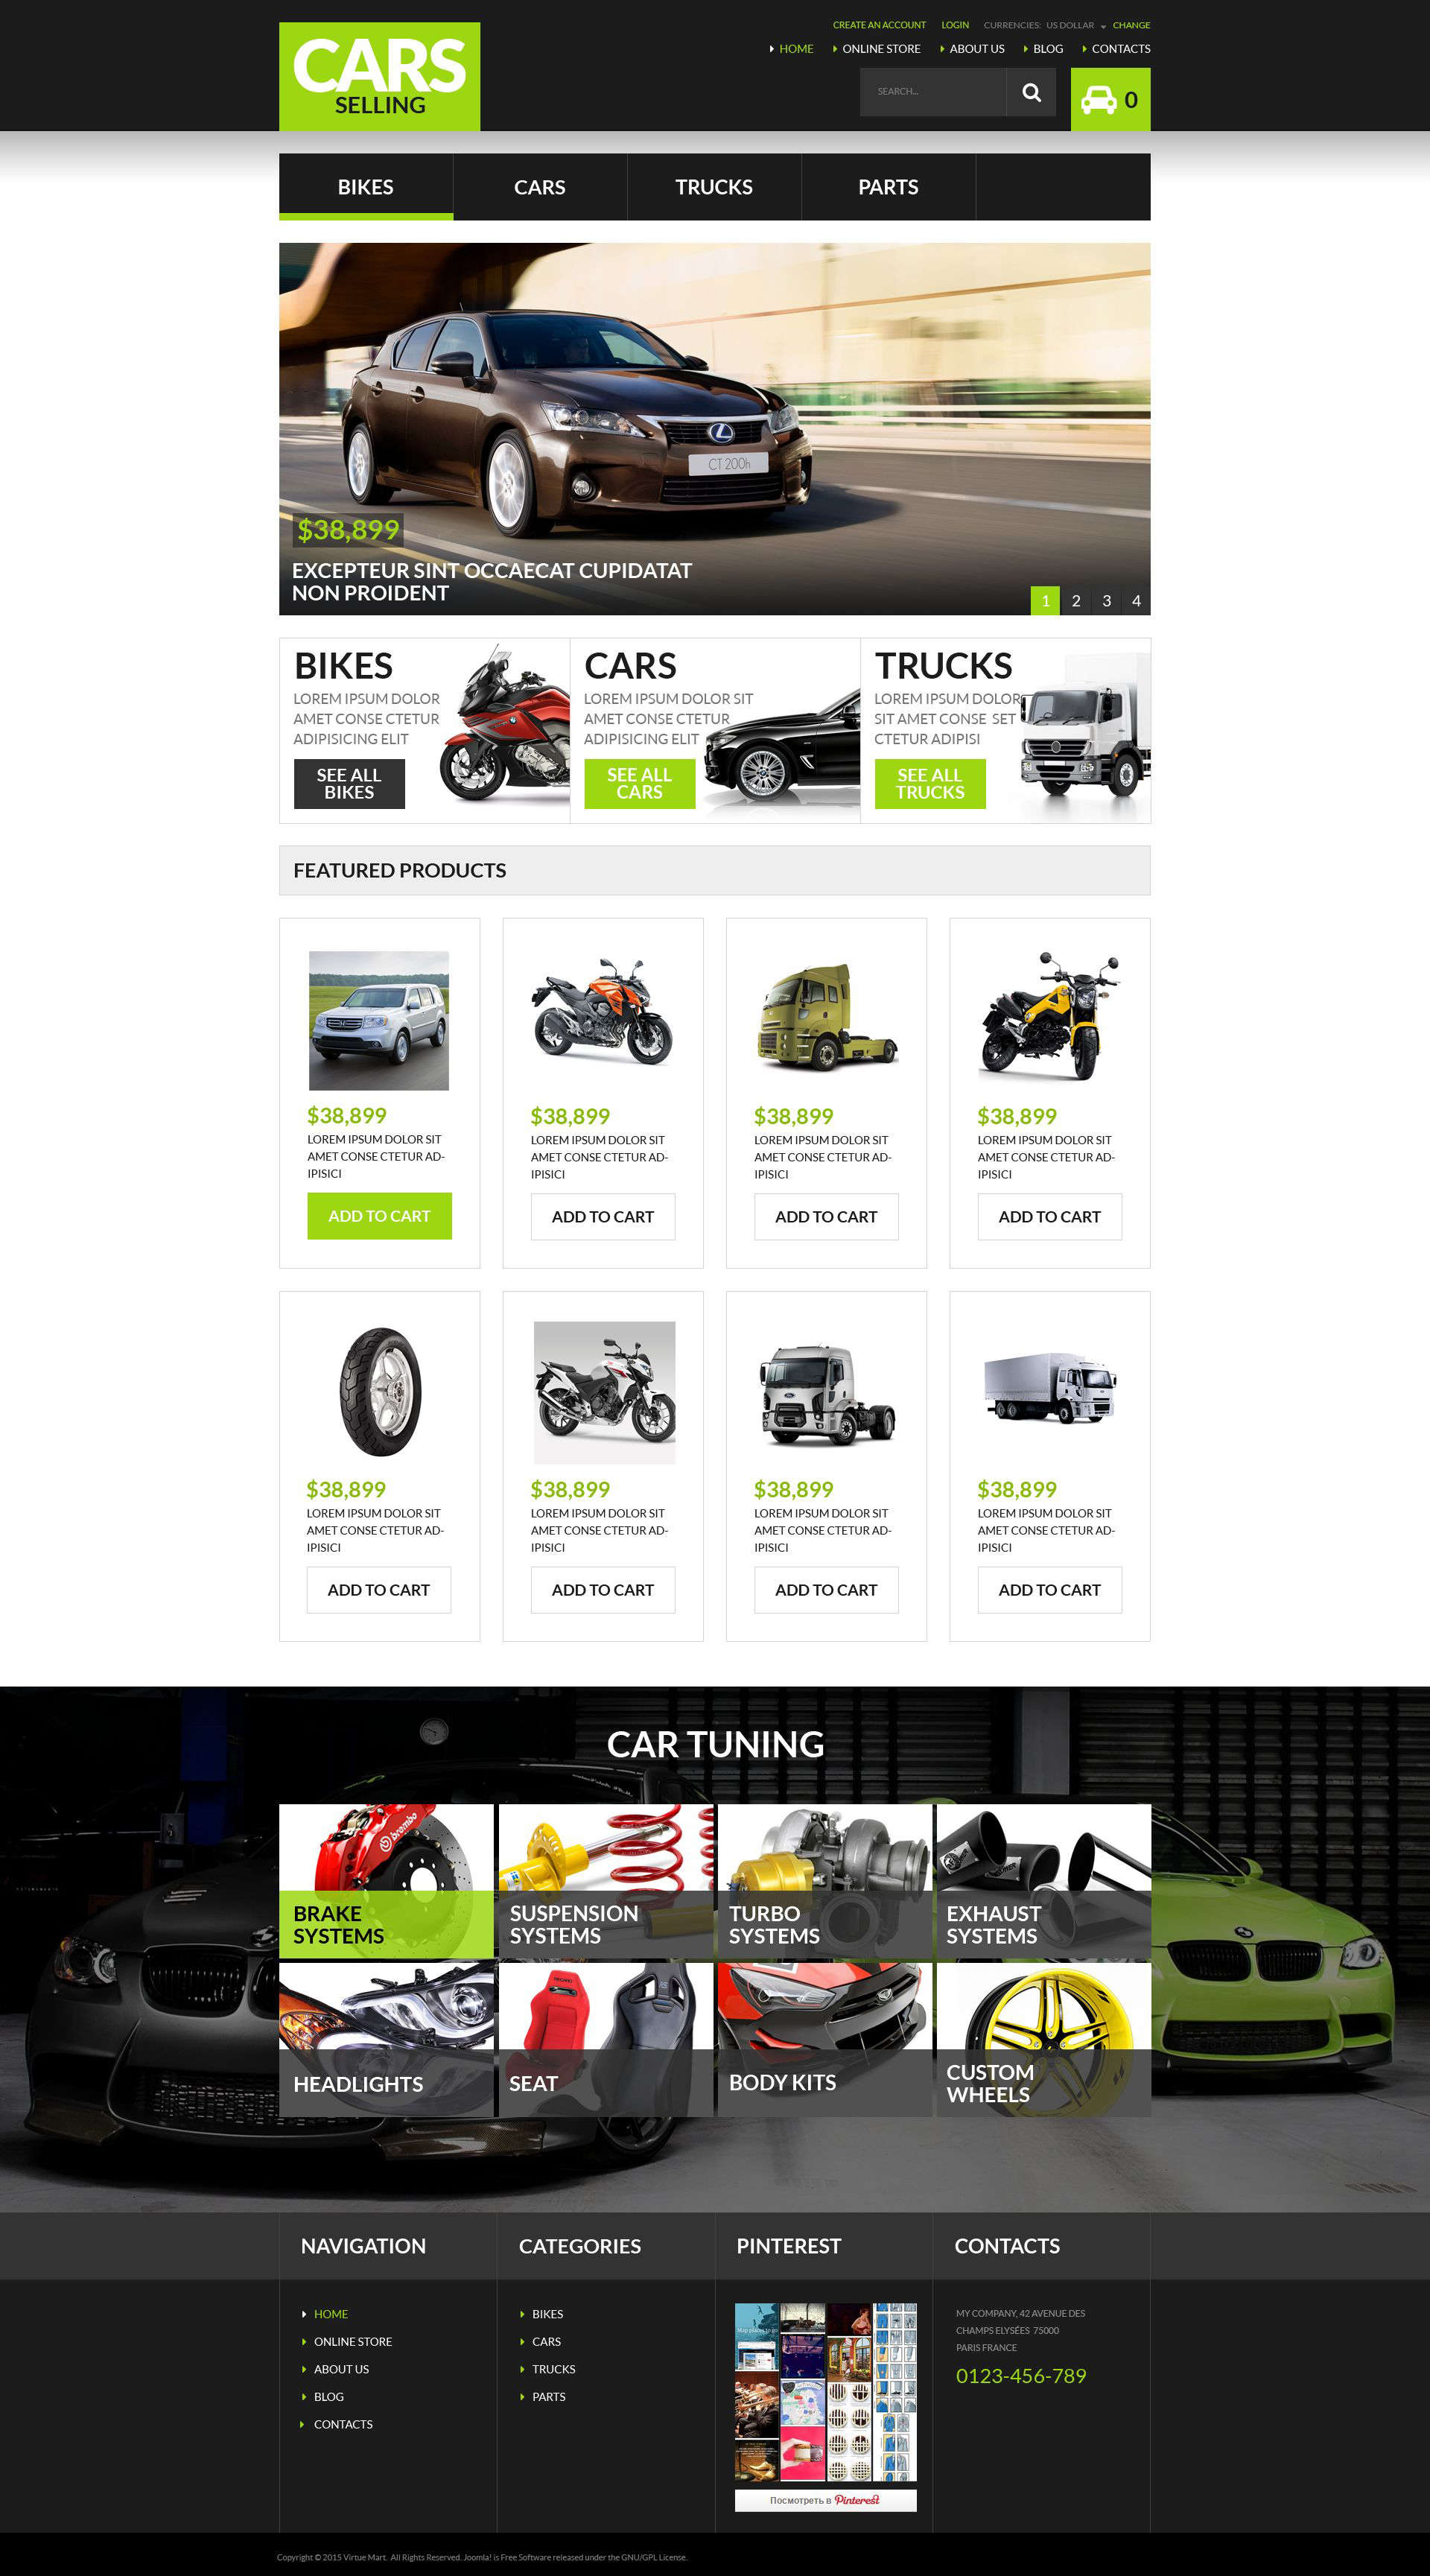 The Car Rental VirtueMart Design 53911, one of the best VirtueMart templates of its kind (cars, most popular), also known as car rental VirtueMart template, auto dealer VirtueMart template, improvement VirtueMart template, new VirtueMart template, used VirtueMart template, certified VirtueMart template, exhibition solution VirtueMart template, market VirtueMart template, research VirtueMart template, vendor VirtueMart template, motor VirtueMart template, price VirtueMart template, Lexus transport VirtueMart template, speed VirtueMart template, jeep VirtueMart template, ford VirtueMart template, Audi Volvo Mercedes driving VirtueMart template, off-road VirtueMart template, racing VirtueMart template, driver VirtueMart template, track VirtueMart template, race VirtueMart template, urban VirtueMart template, freeway VirtueMart template, highway VirtueMart template, road VirtueMart template, vehicle VirtueMart template, Porsche BMW spar and related with car rental, auto dealer, improvement, new, used, certified, exhibition solution, market, research, vendor, motor, price, Lexus transport, speed, jeep, ford, Audi Volvo Mercedes driving, off-road, racing, driver, track, race, urban, freeway, highway, road, vehicle, Porsche BMW spar, etc.